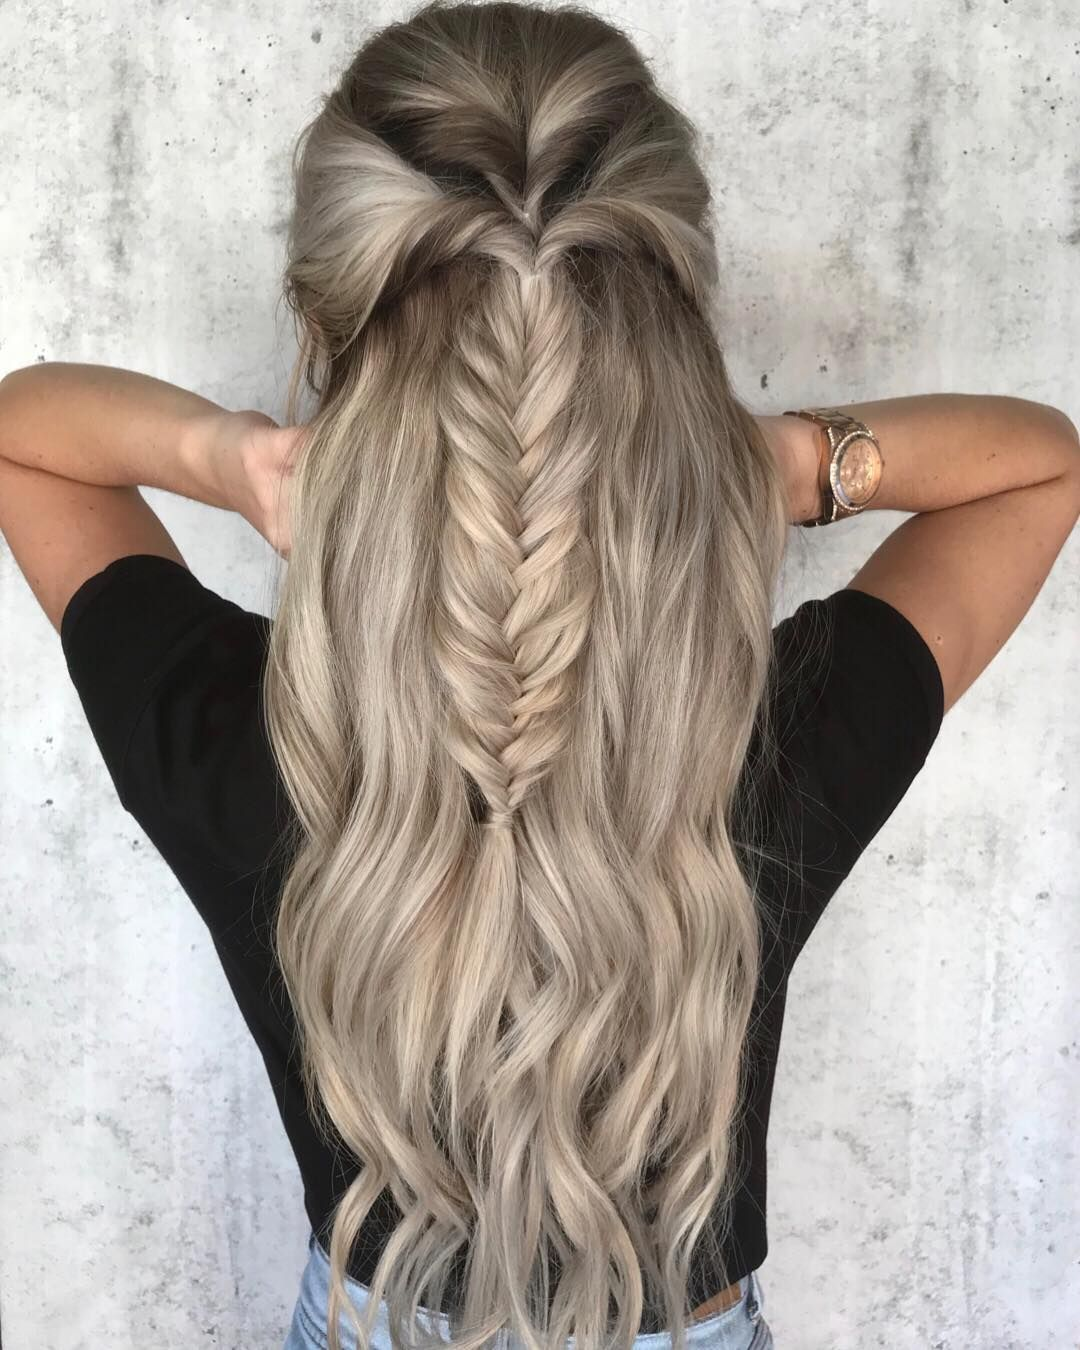 39 Trendy Messy Chic Braided Hairstyles Long Hair Styles Hair Styles Braided Hairstyles